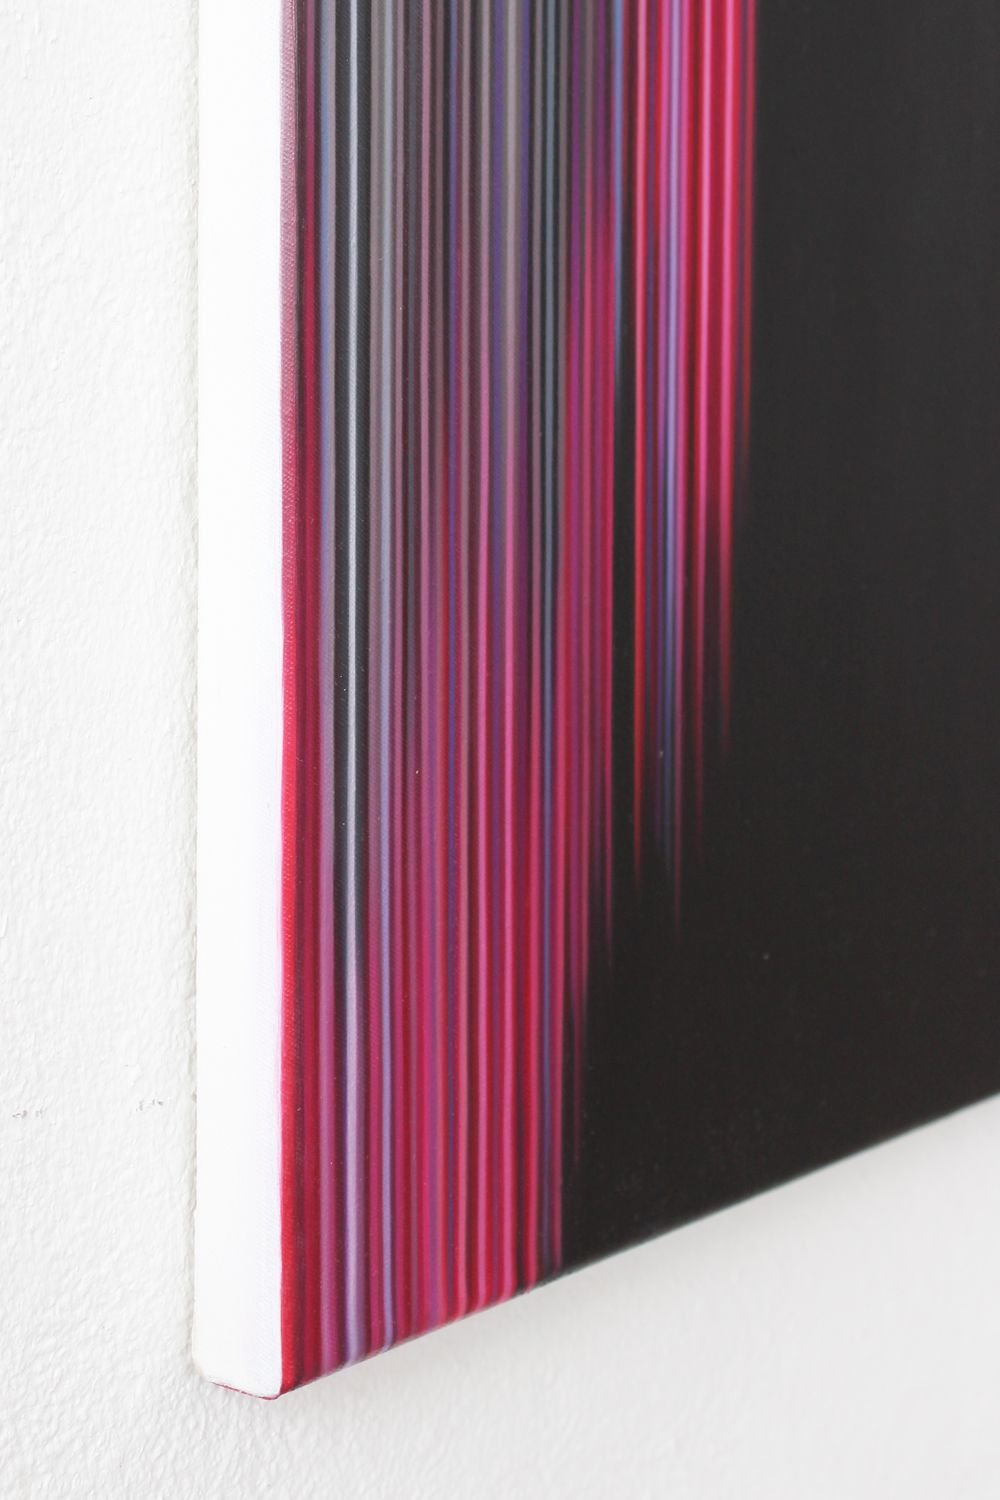 Pink Painting (Building No.4) ,Doris Marten,Peinture contemporaine, detail 3